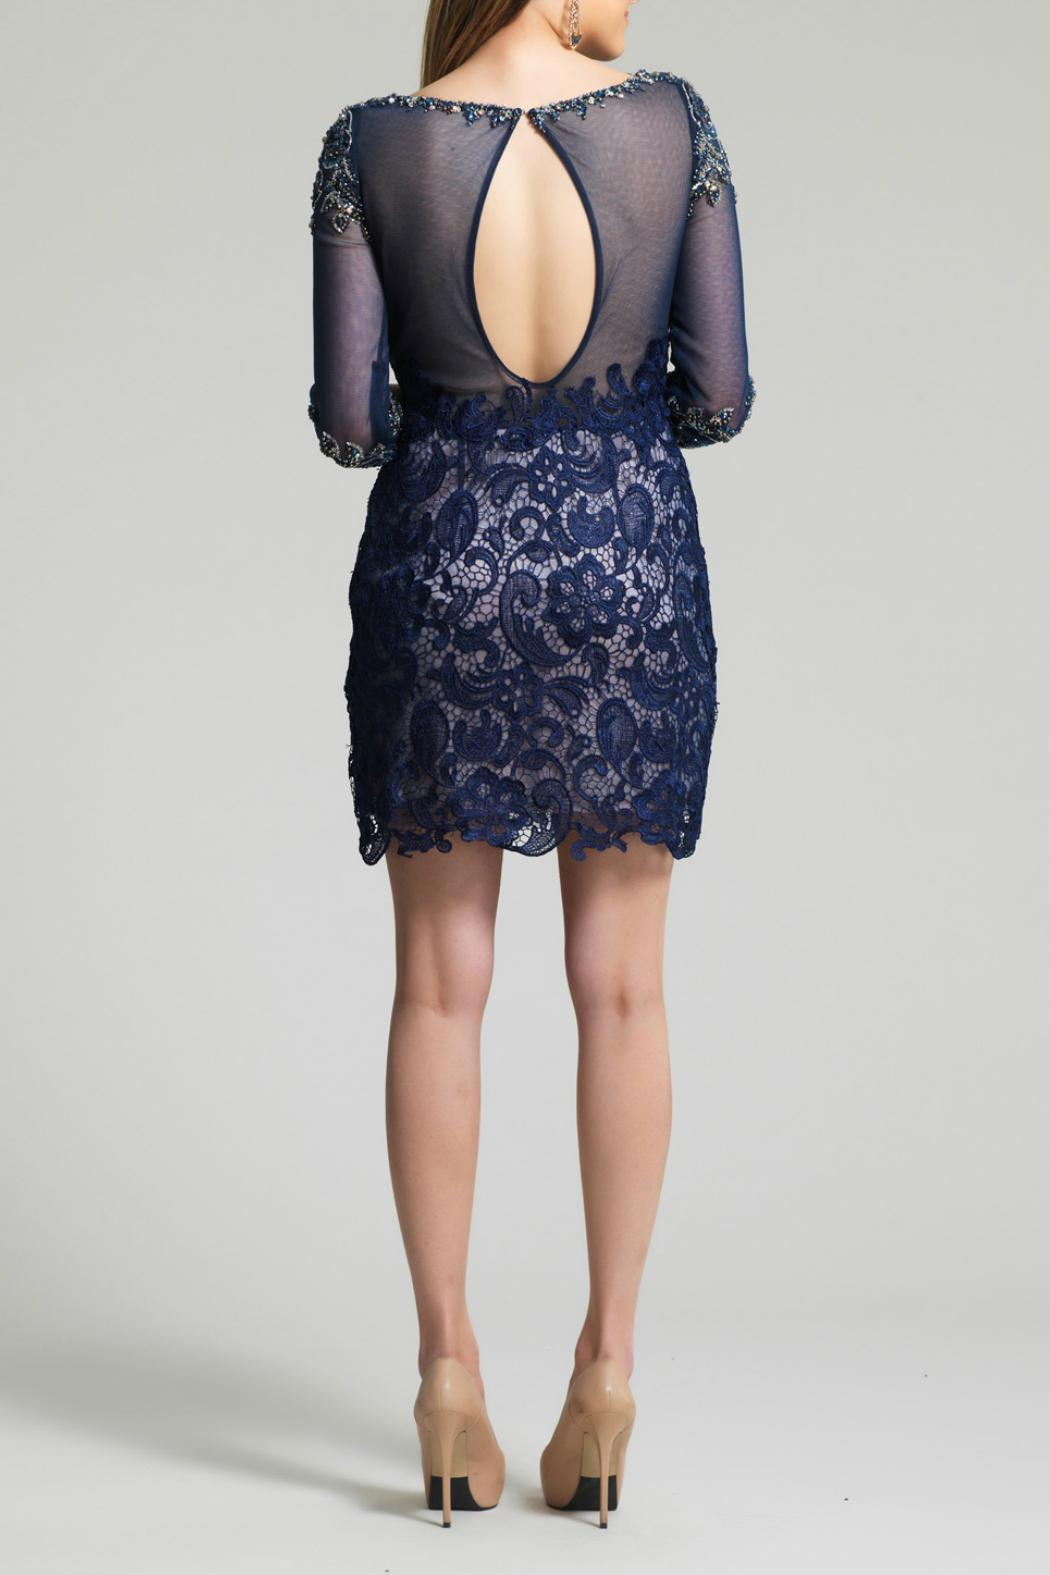 Dave and Johnny Lace Beaded Dress - Front Full Image